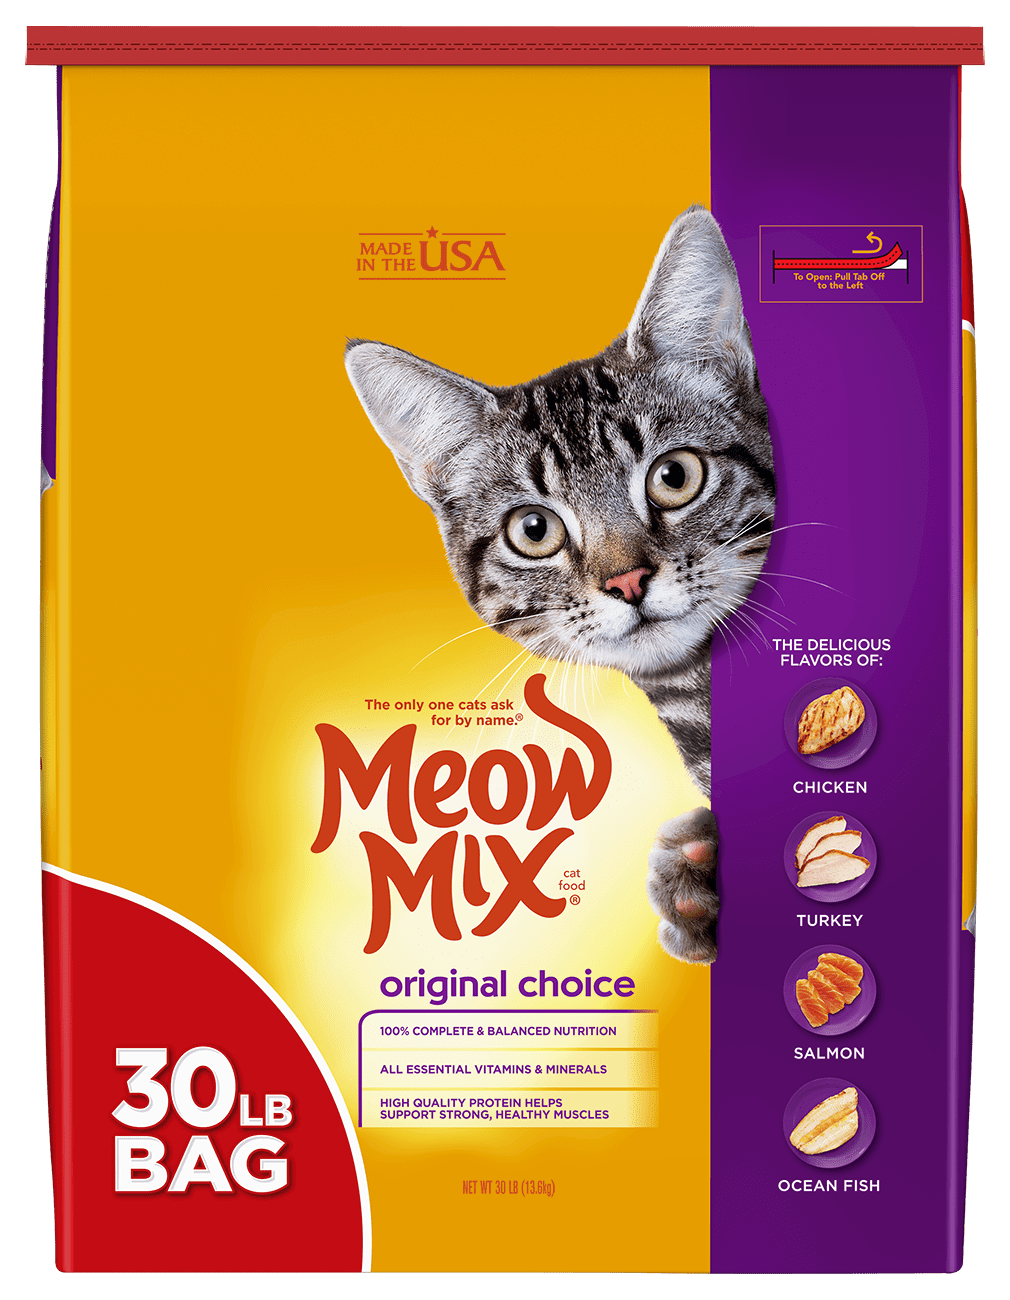 Meow Mix Original Choice Dry Cat Food, 30 lb by The J.M. Smucker Company